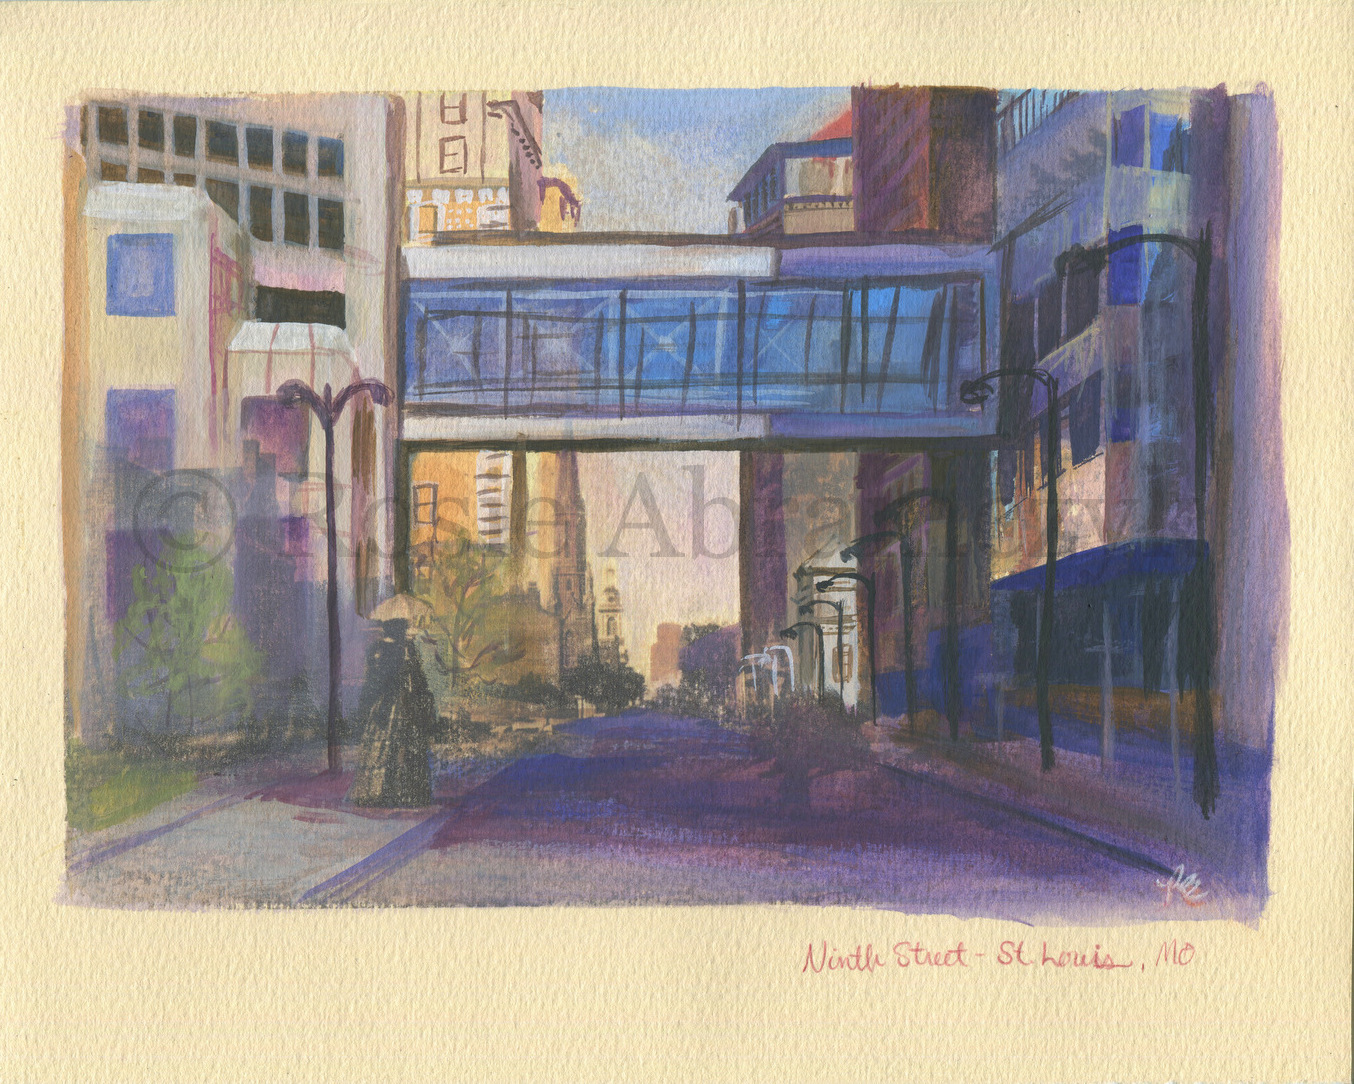 Ninth Street, St. Louis, MO, by Rosie Abramczyk, Gouache and Xerox Transfer, 2008